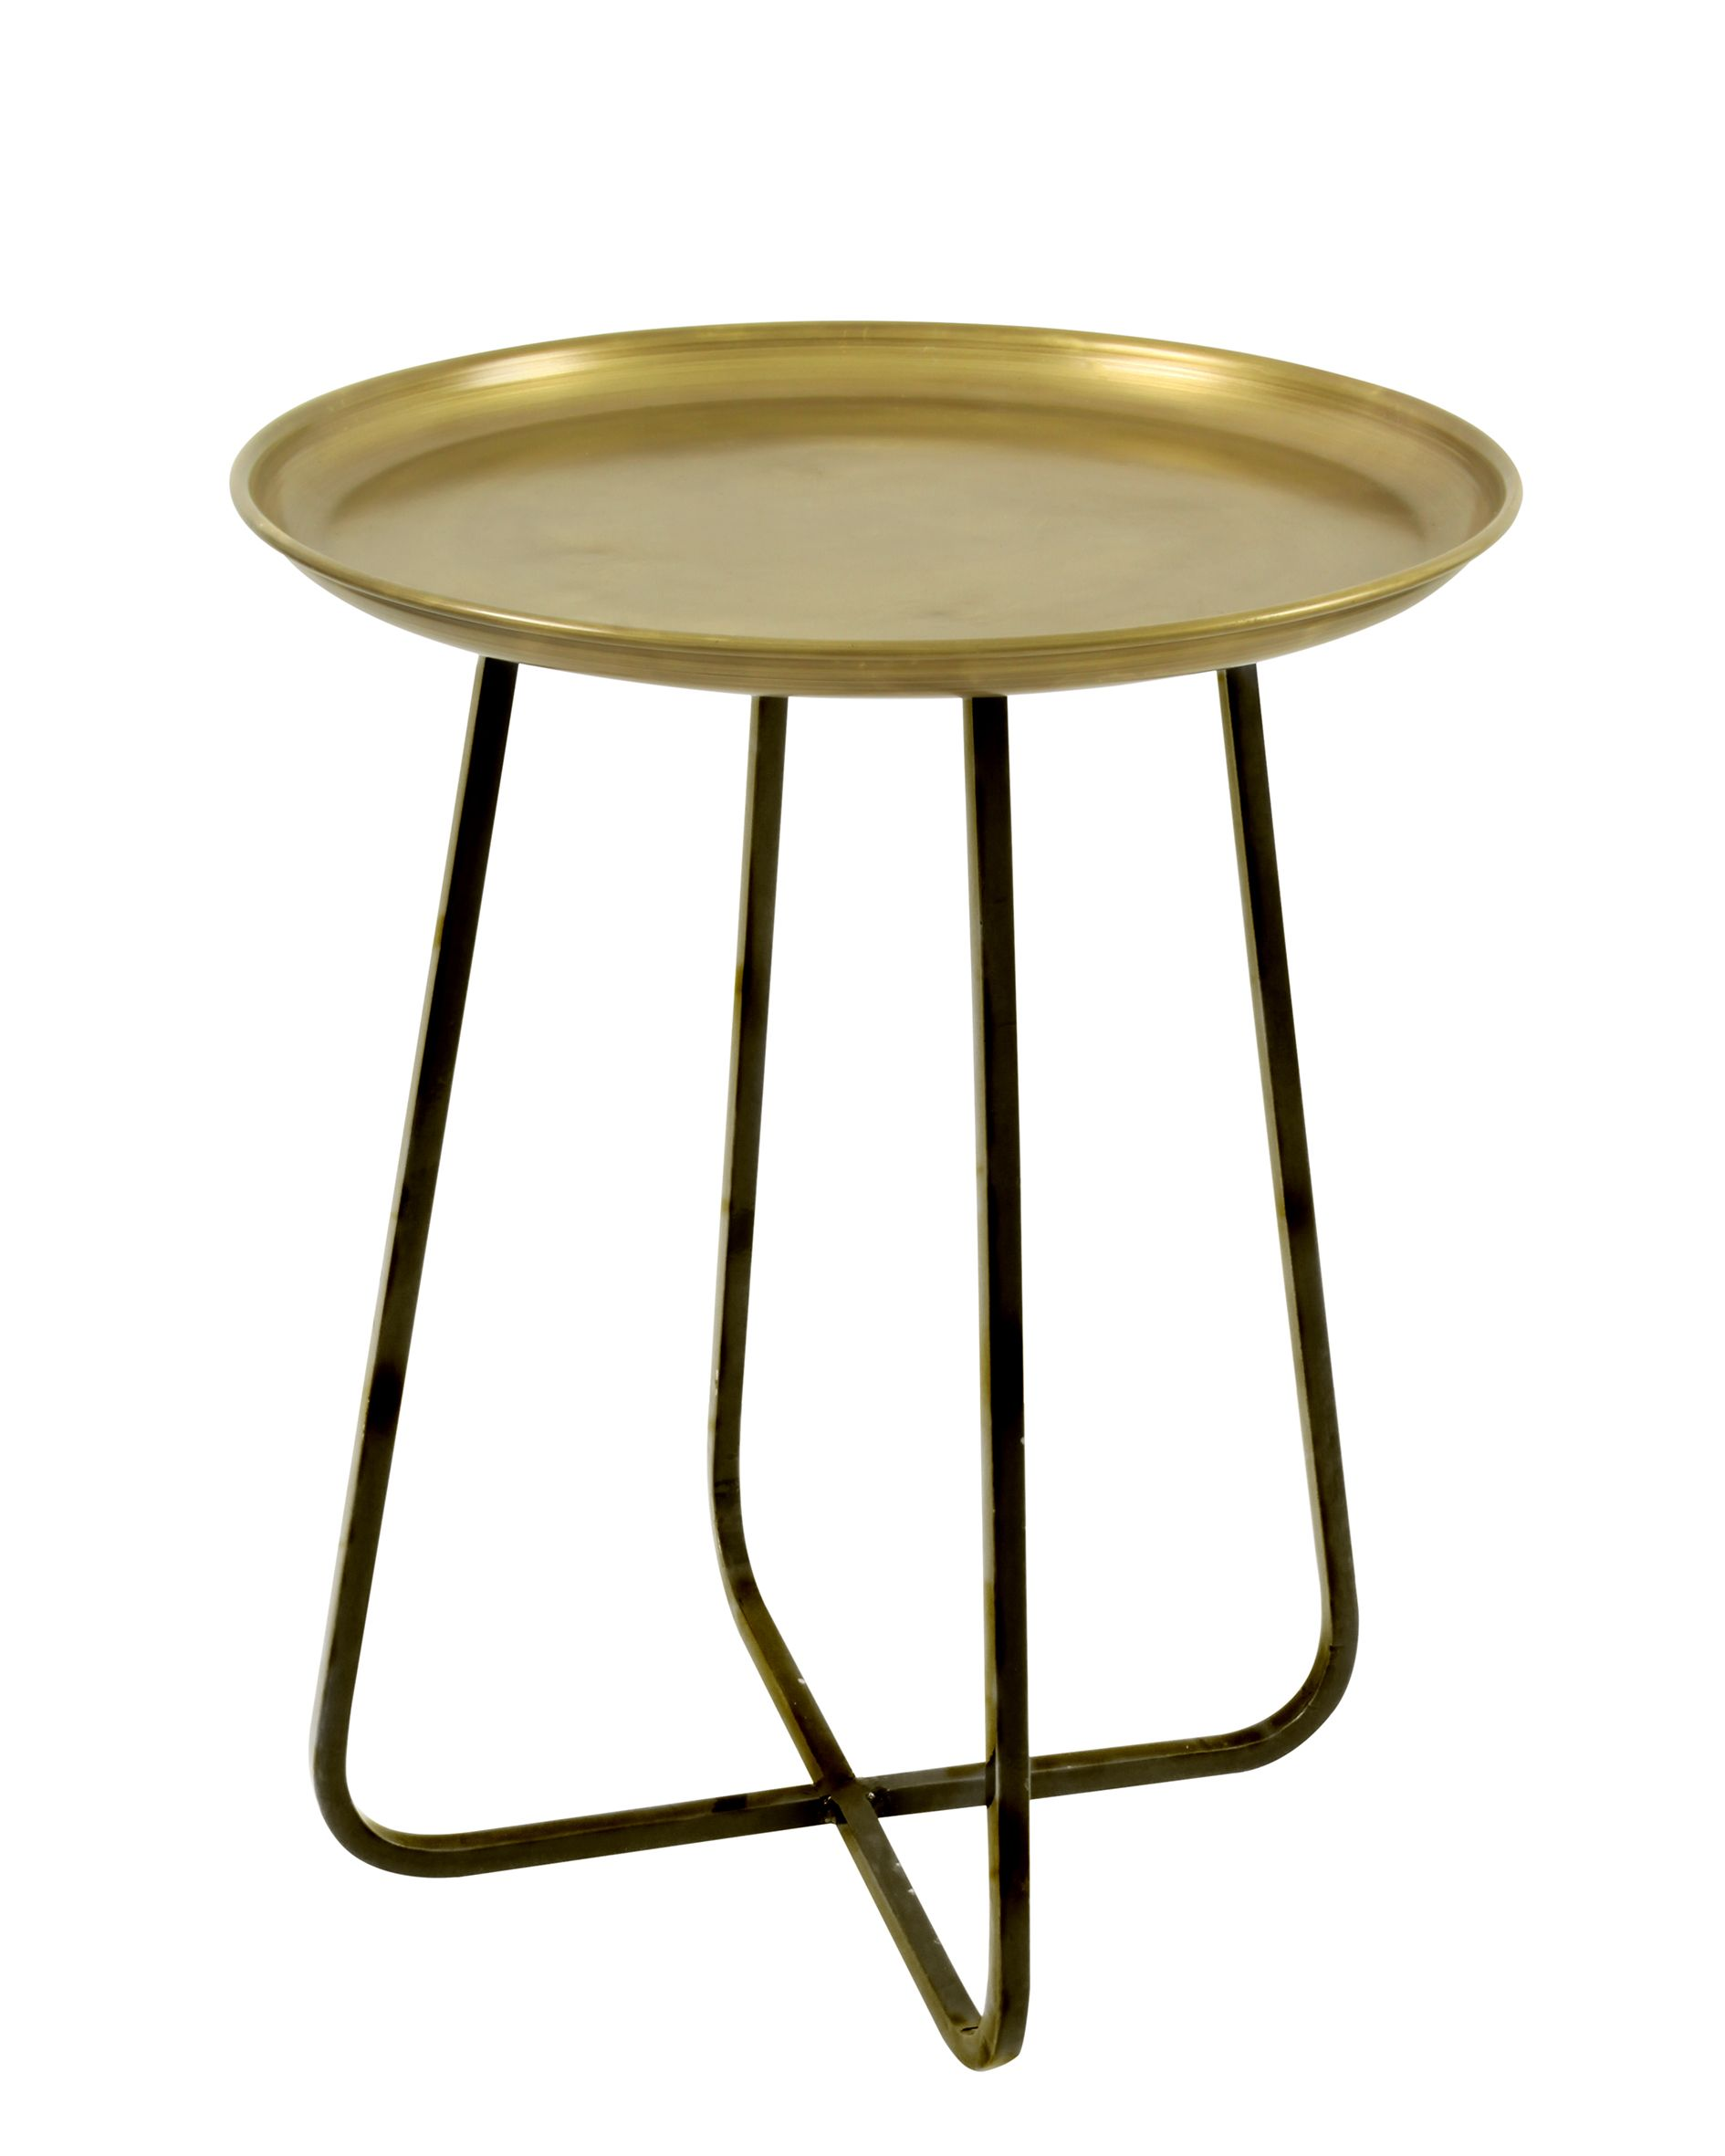 lily side table nuevo living modern and end tables inside gold christiane lemieux accessories pertaining ideas accent decor architecture counter height small clear target pouf